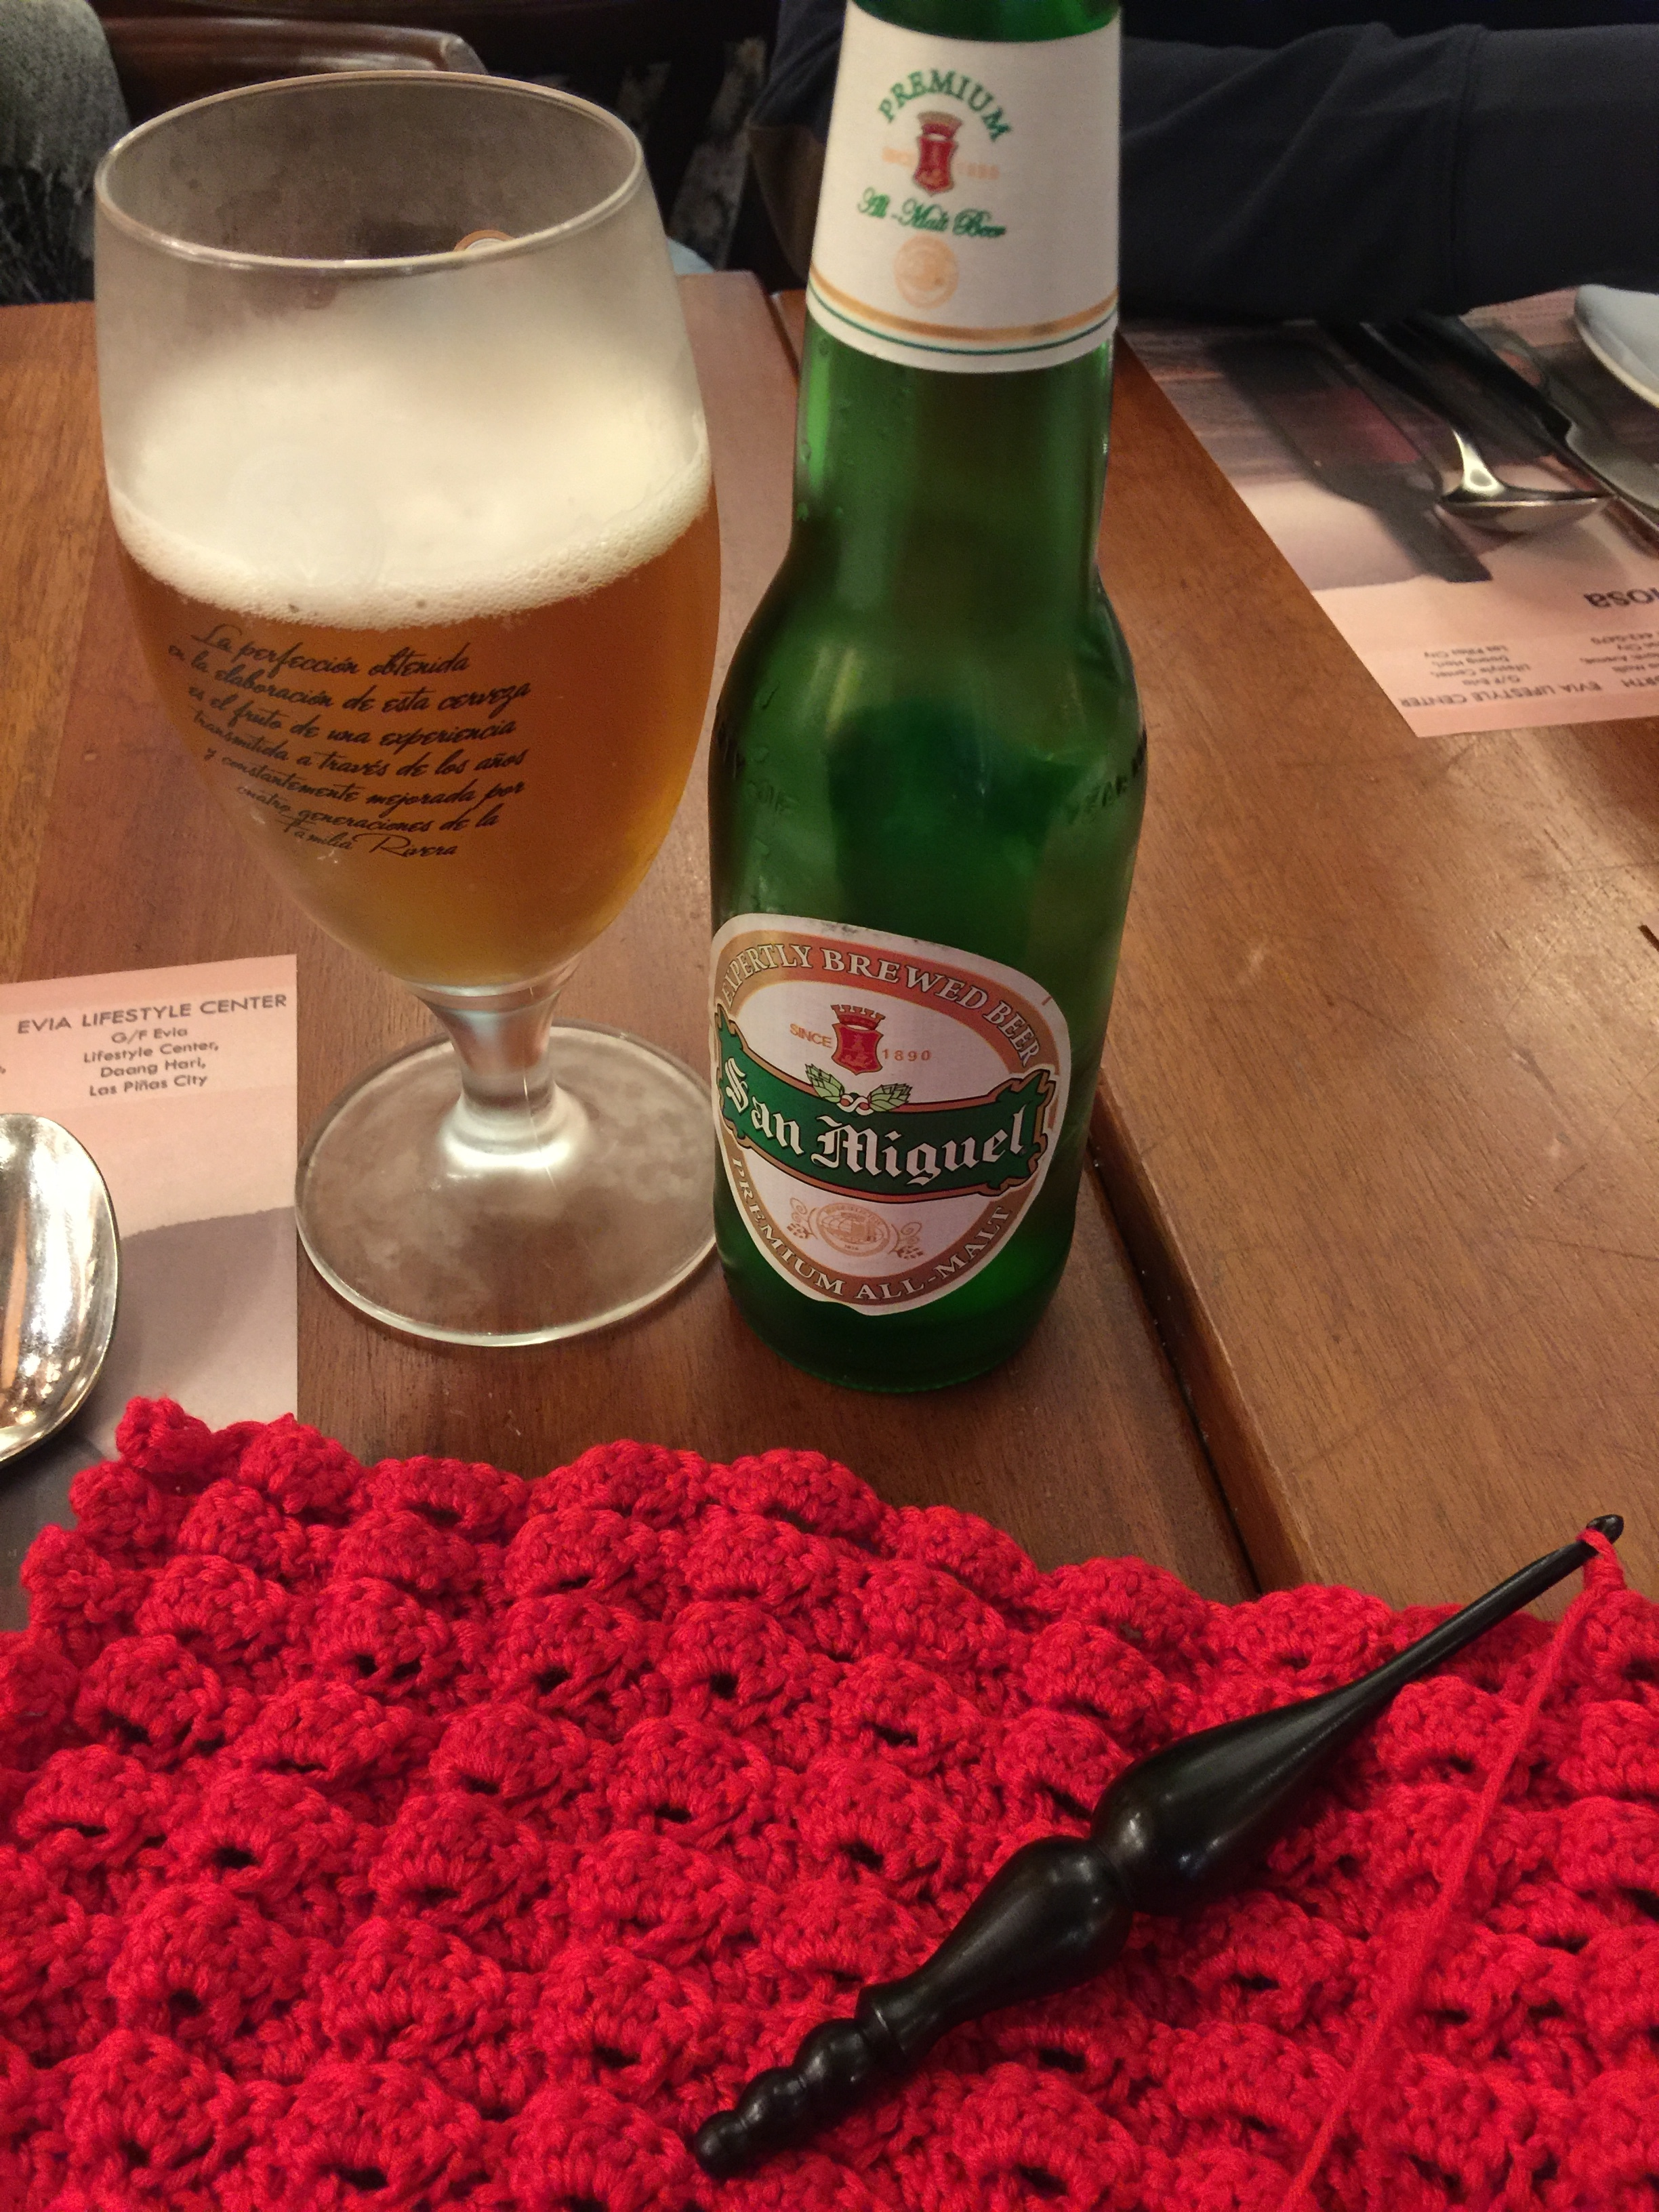 Unwinding after a busy Friday with beer and crochet 🍺